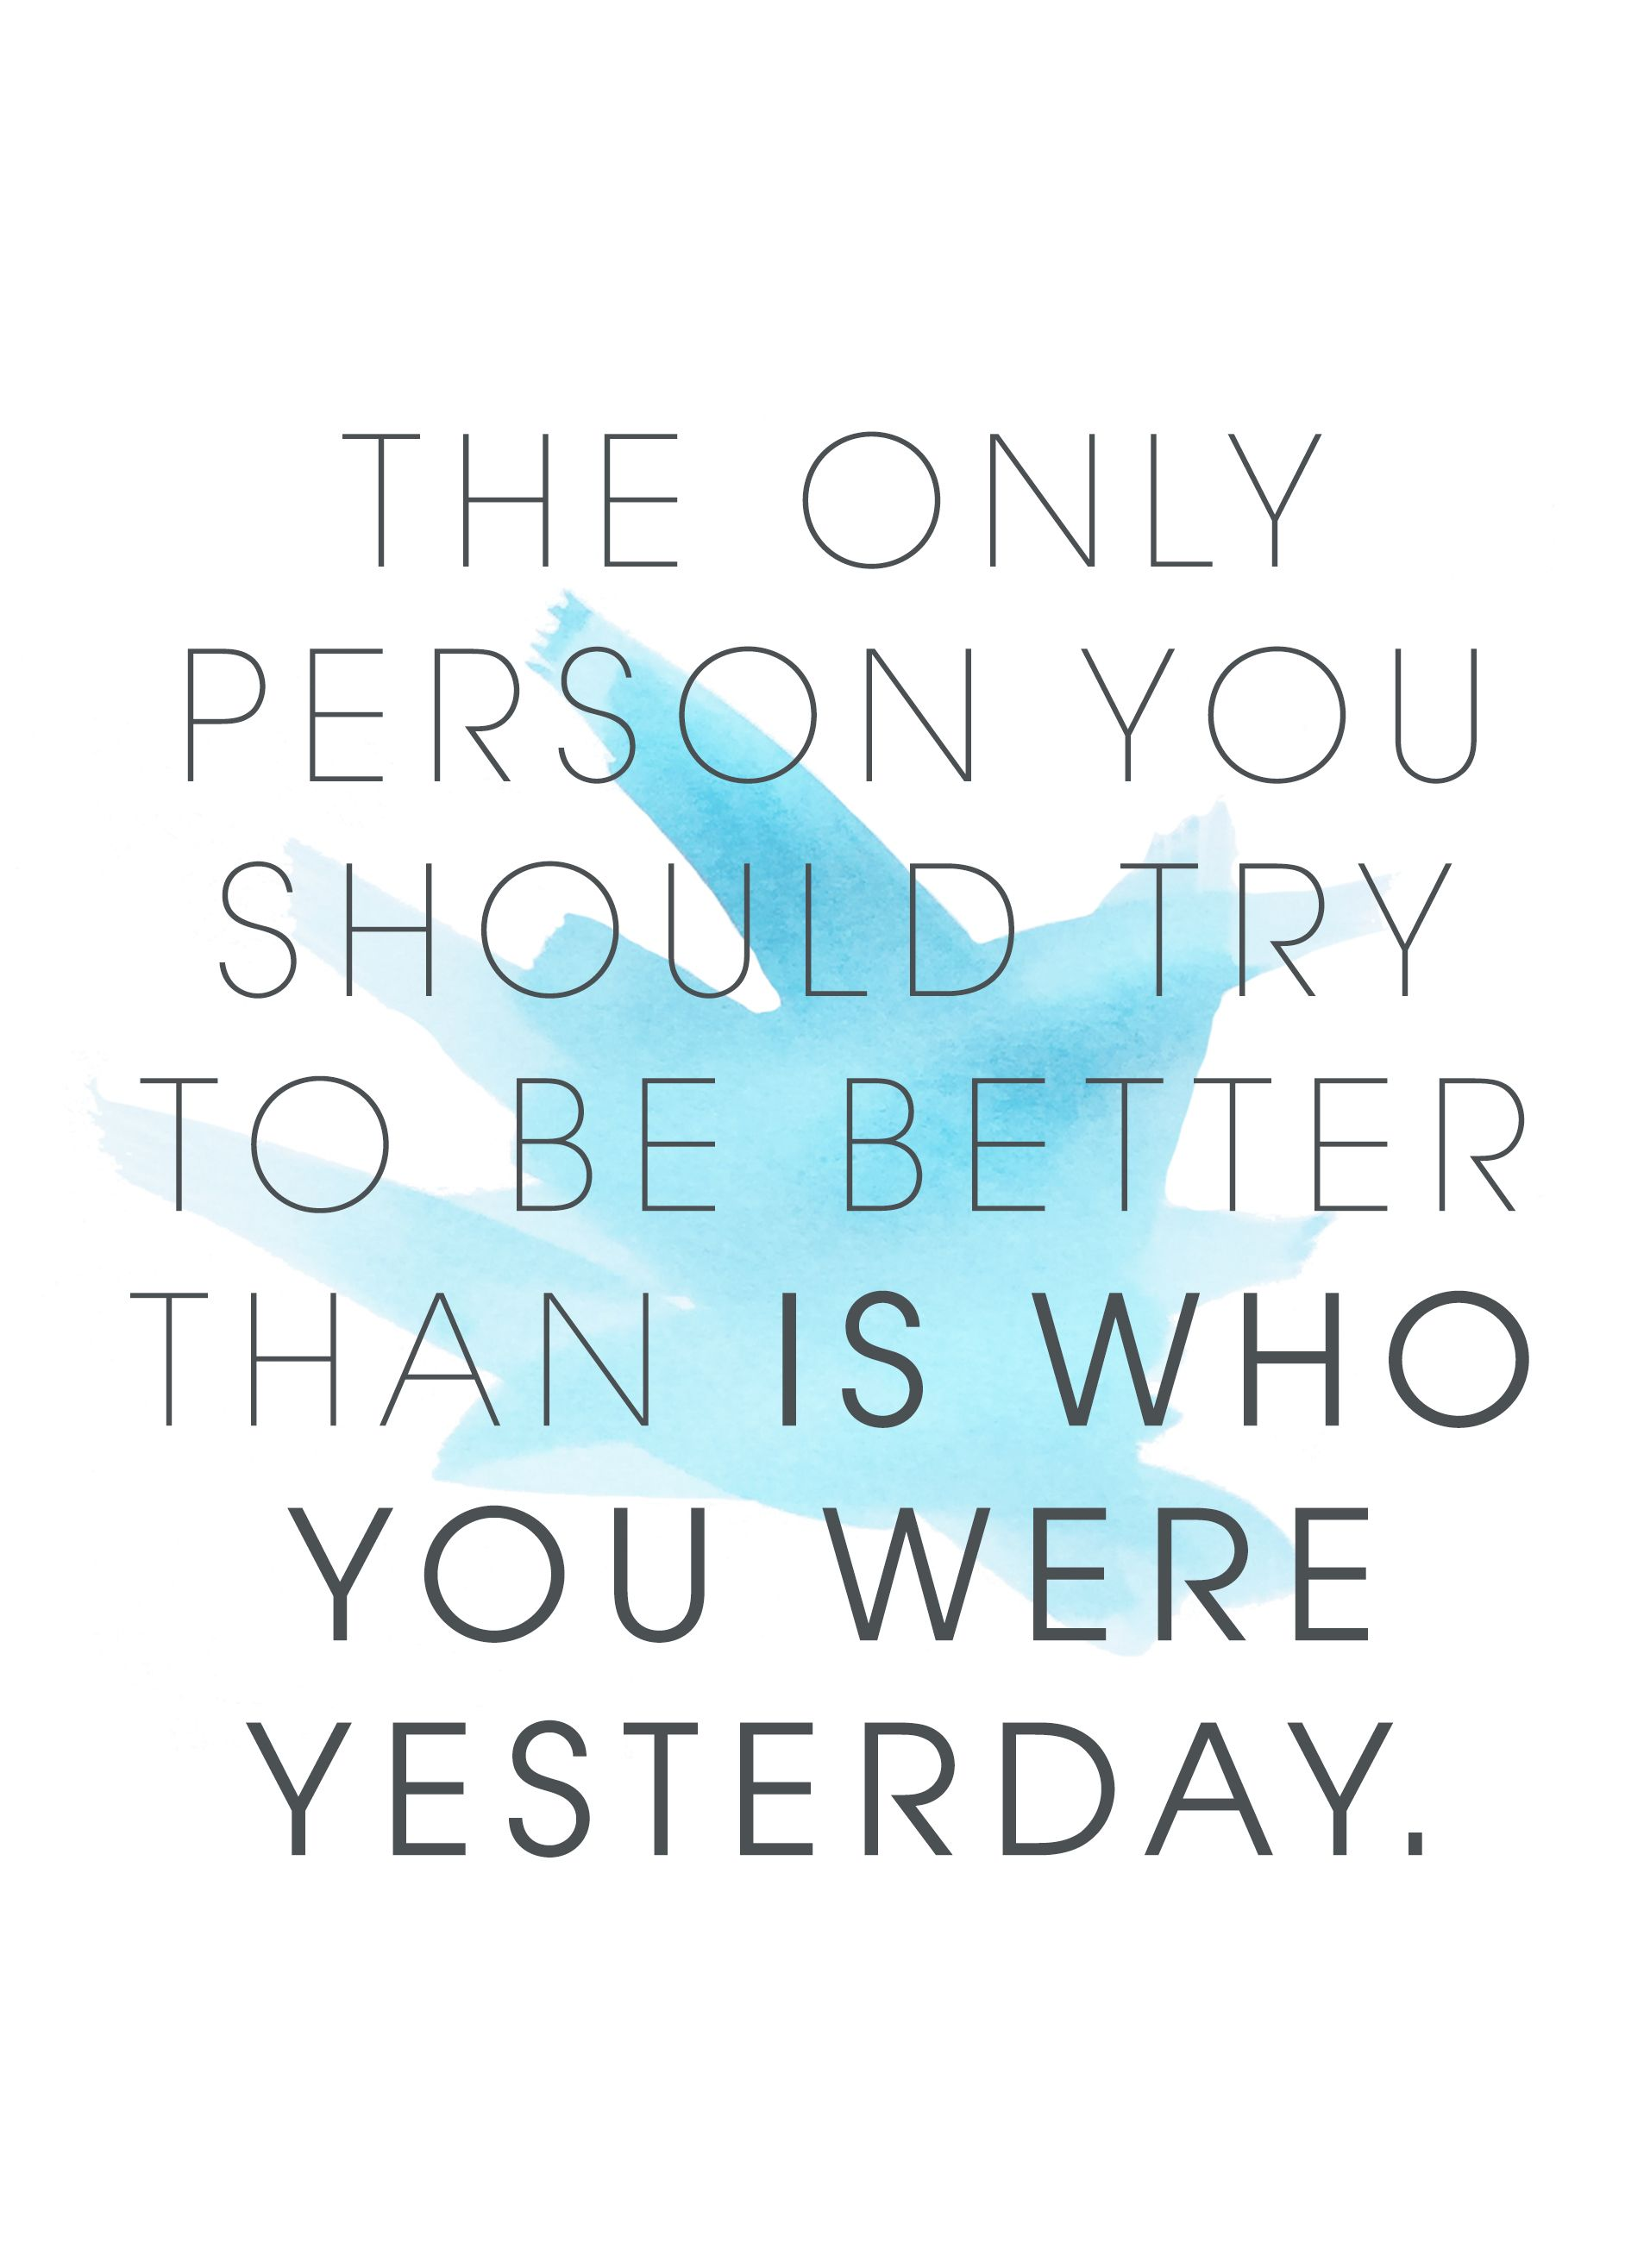 9 Quotes To Help You Stop Comparing Yourself To Others Comparison Quotes Inspirational Words Self Love Quotes